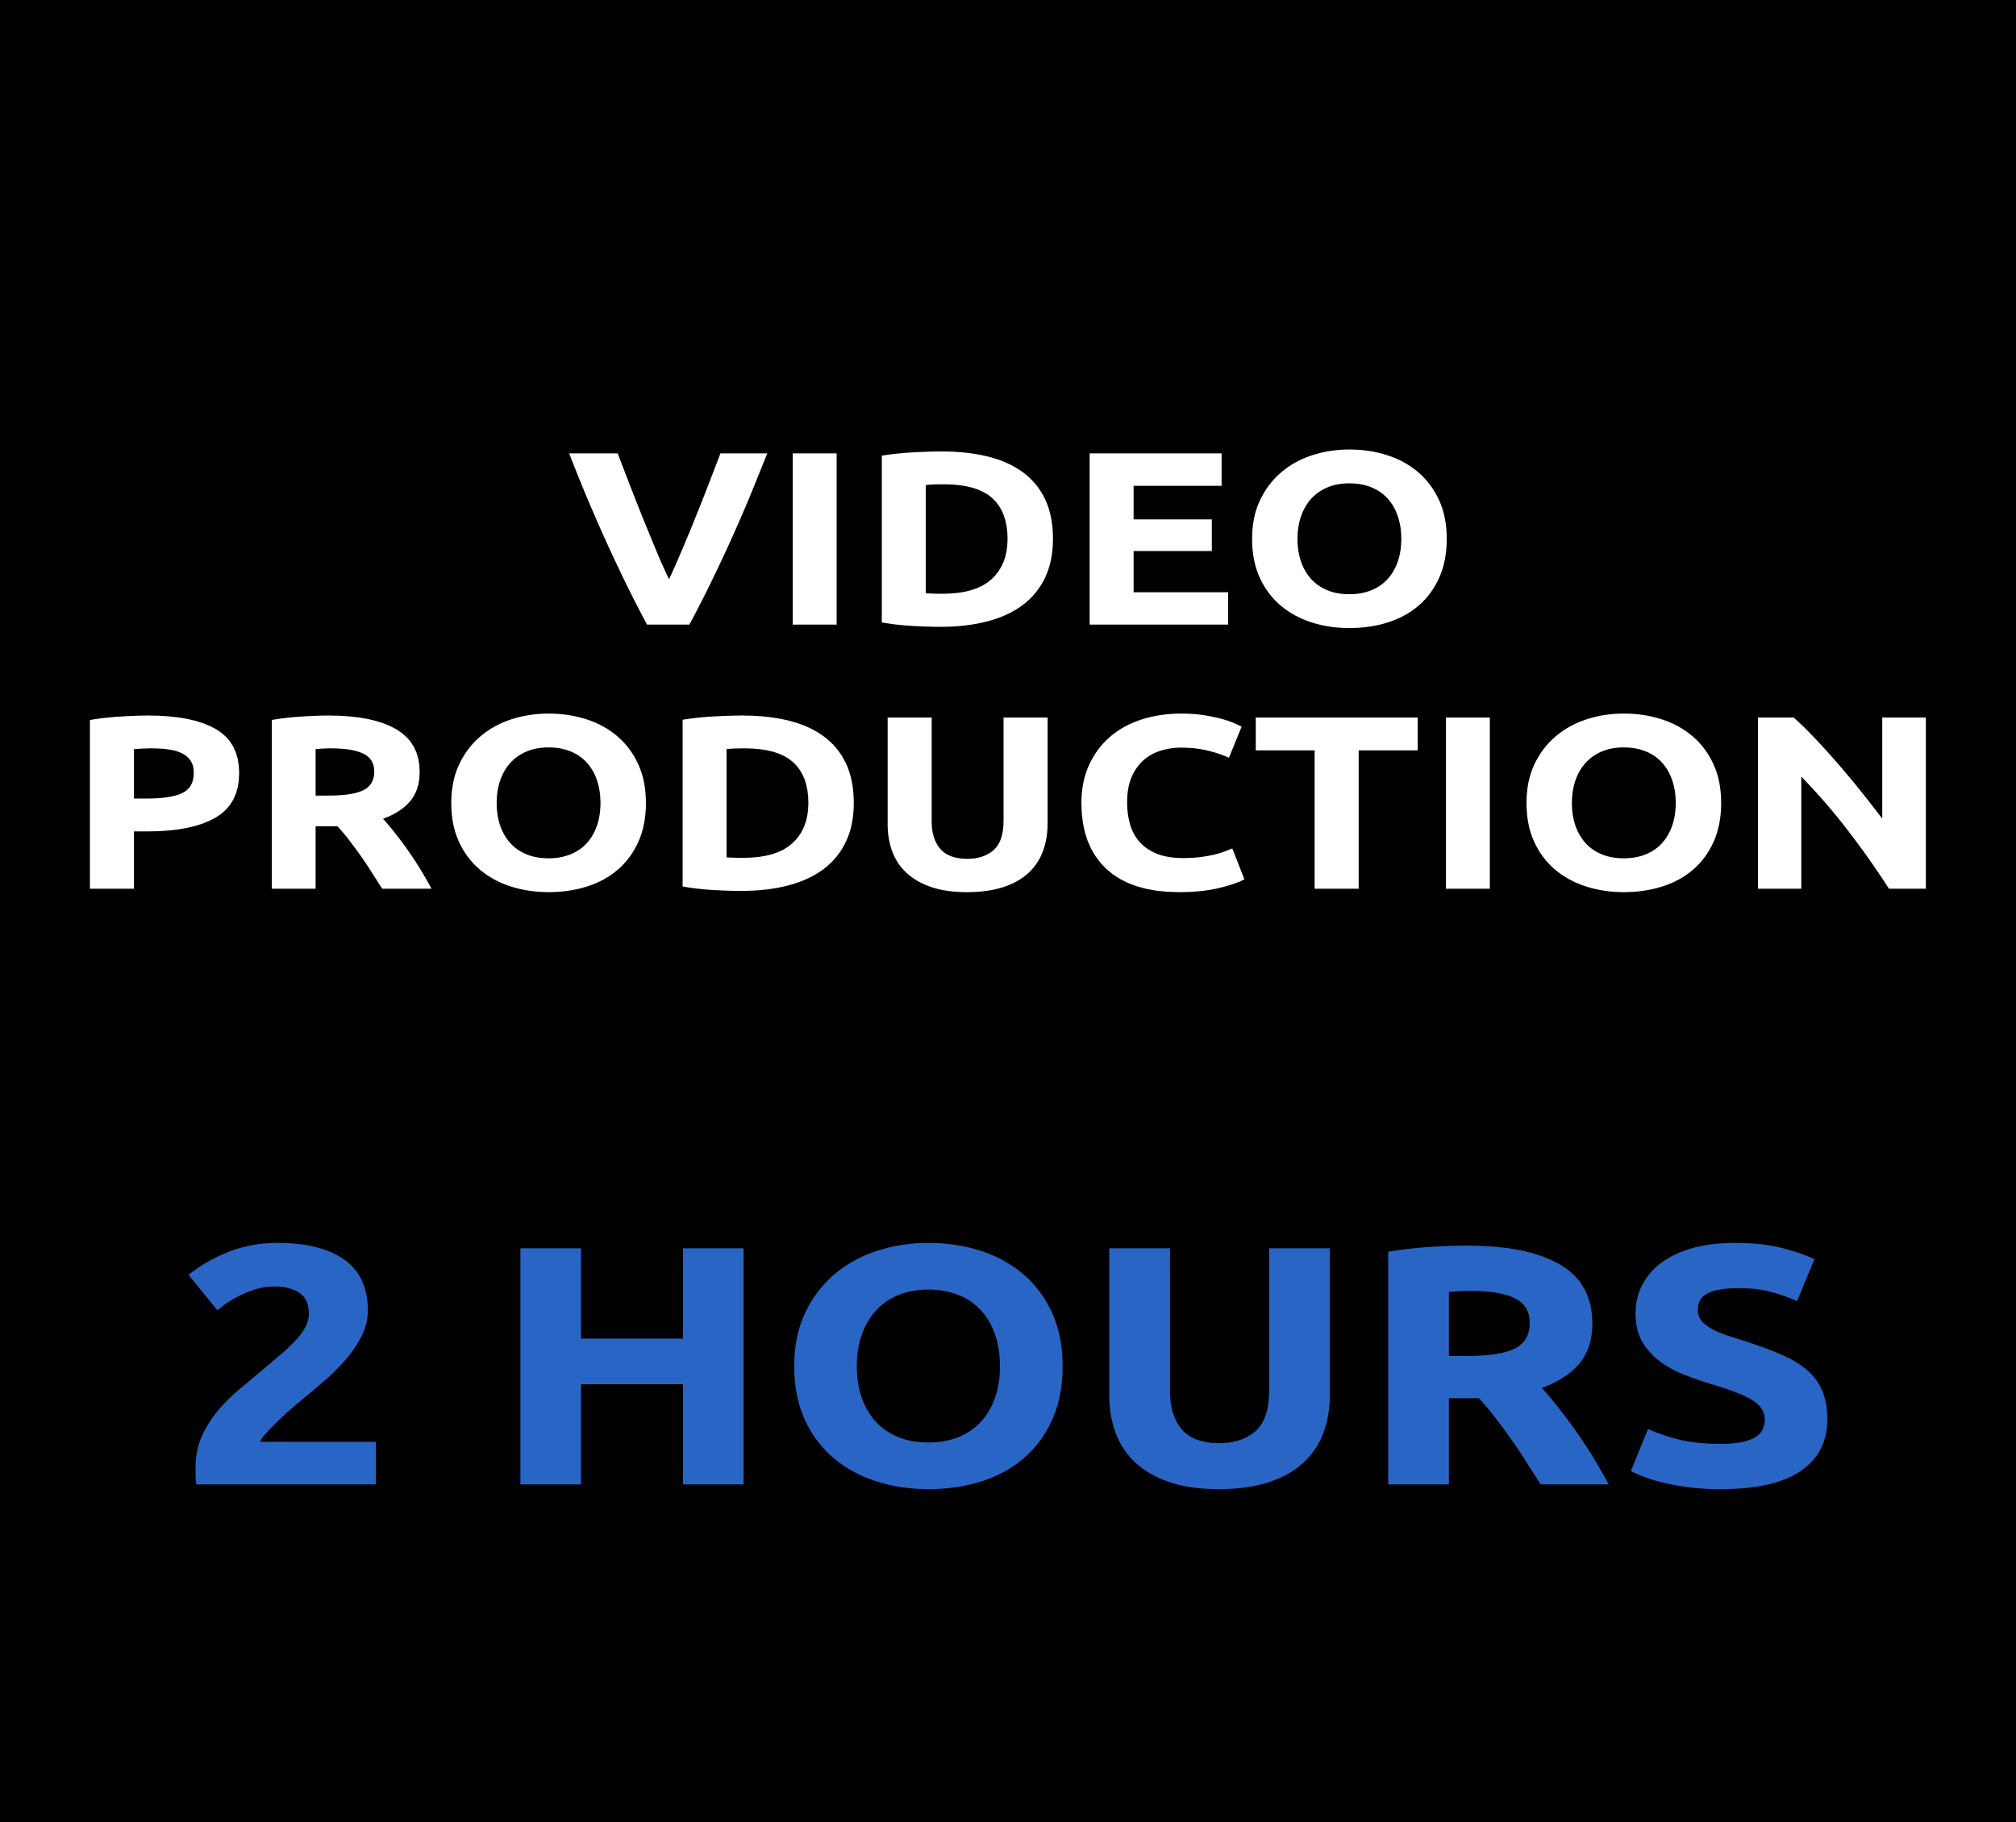 VIDEO PRODUCTION- 2 HOURS 06